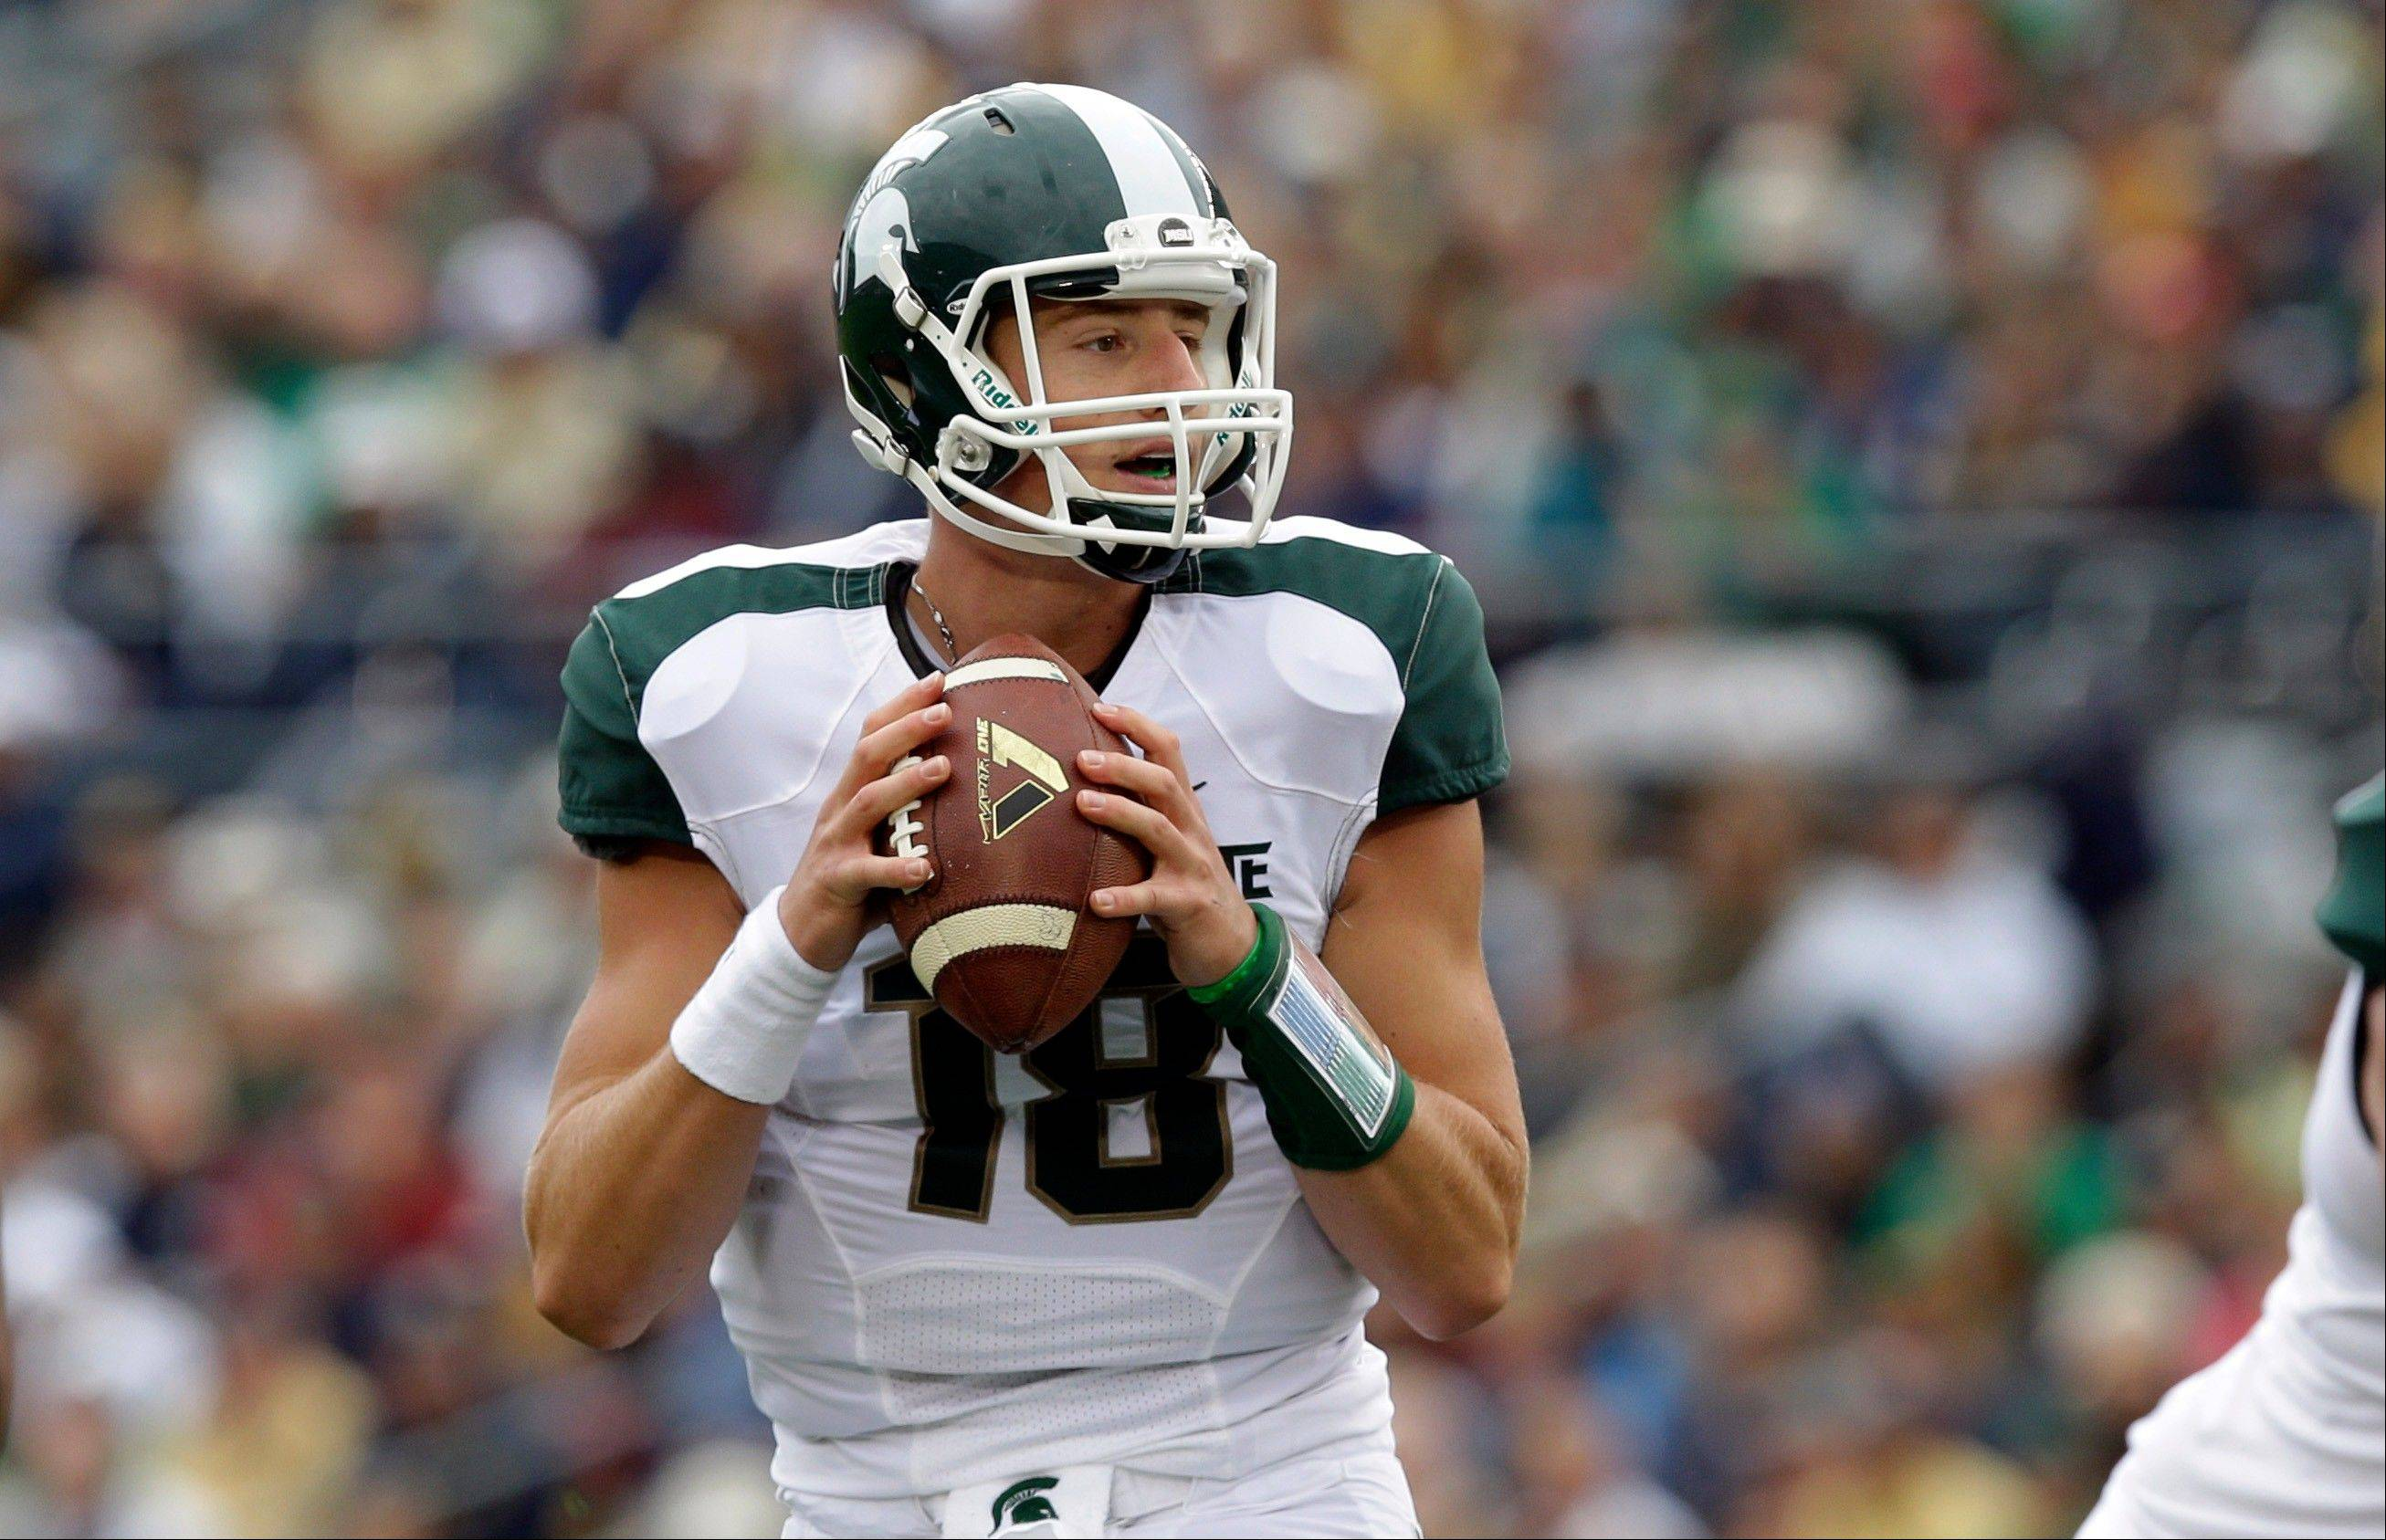 Michigan State quarterback Connor Cook throws against Notre Dame during the first half of last week's game in South Bend, Ind.